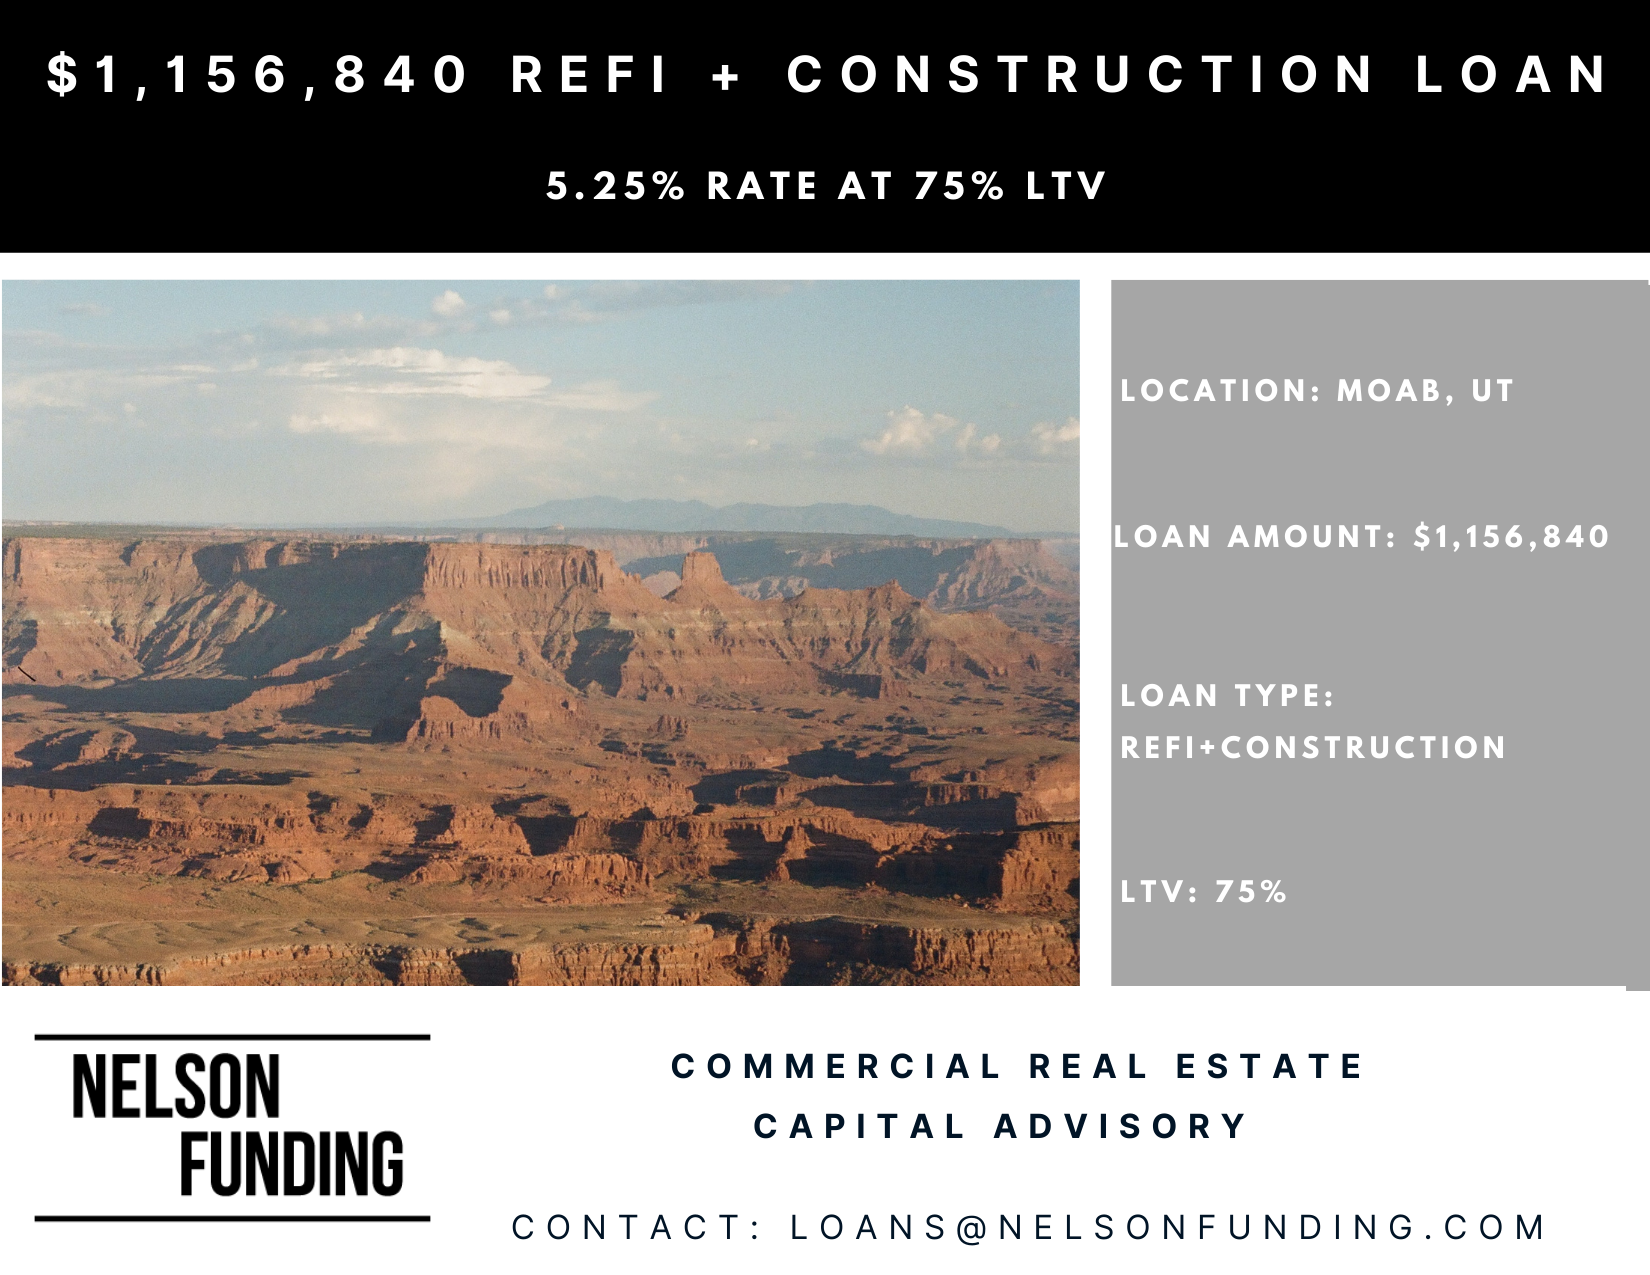 Closes Refinance and Construction Loan In Moab, UT